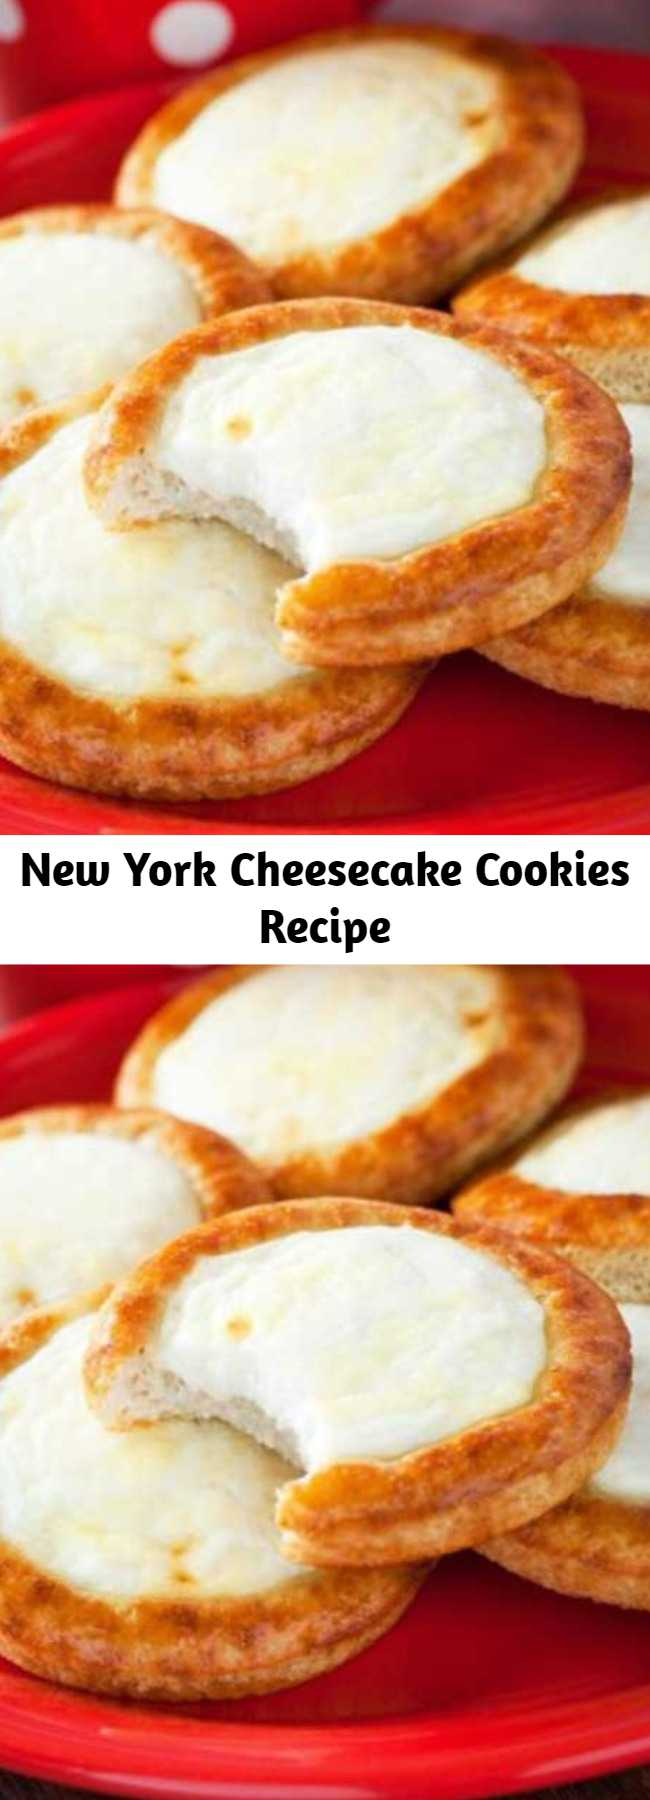 """New York Cheesecake Cookies Recipe - It's like Christmas came early! If you had asked me what could make a cheesecake I would have smiled dreamily and said """"Nothing."""" But then, cheesecake cookies happened."""